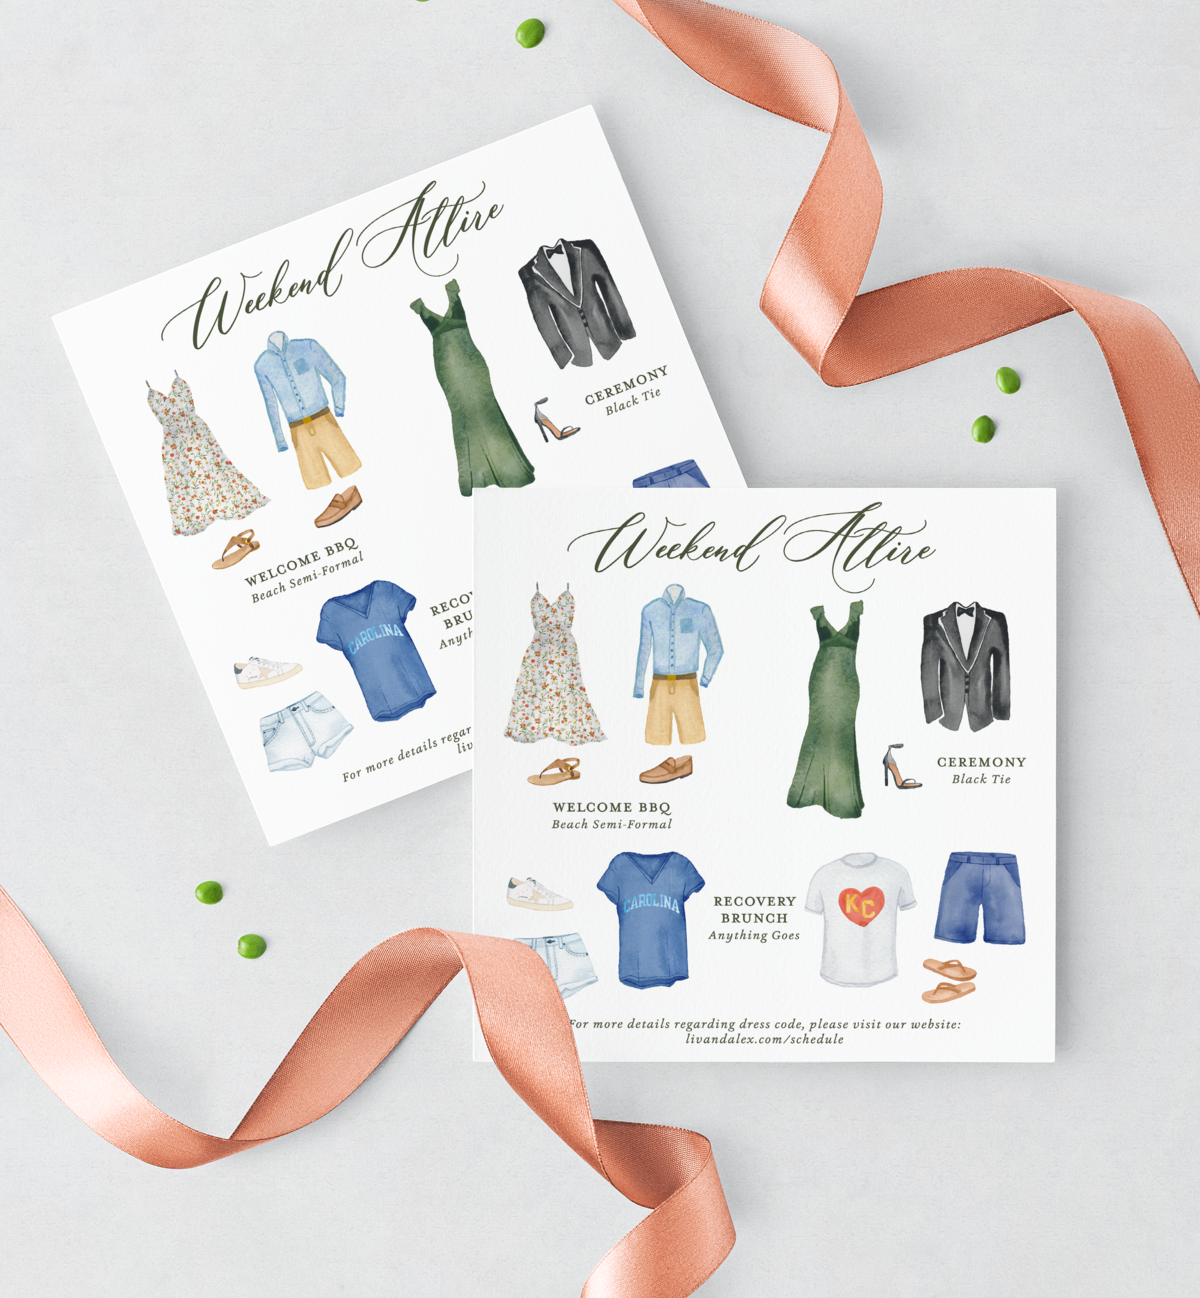 Liv & Alex Attire Cards